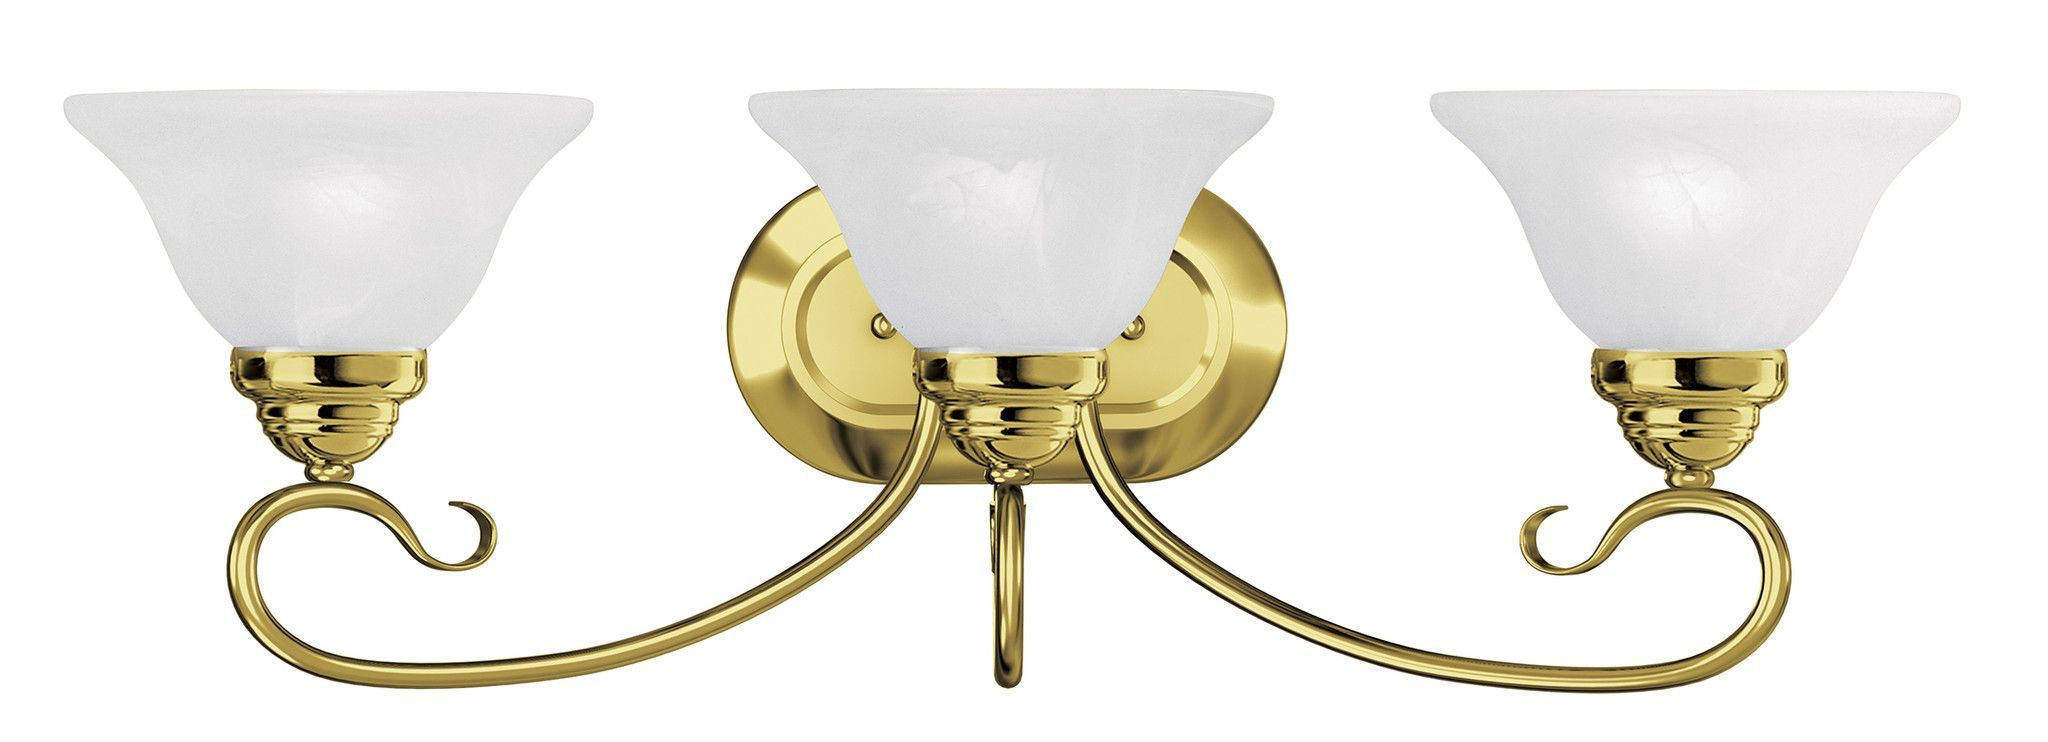 Livex Lighting Coronado Polished Brass Bath Light 6103 02